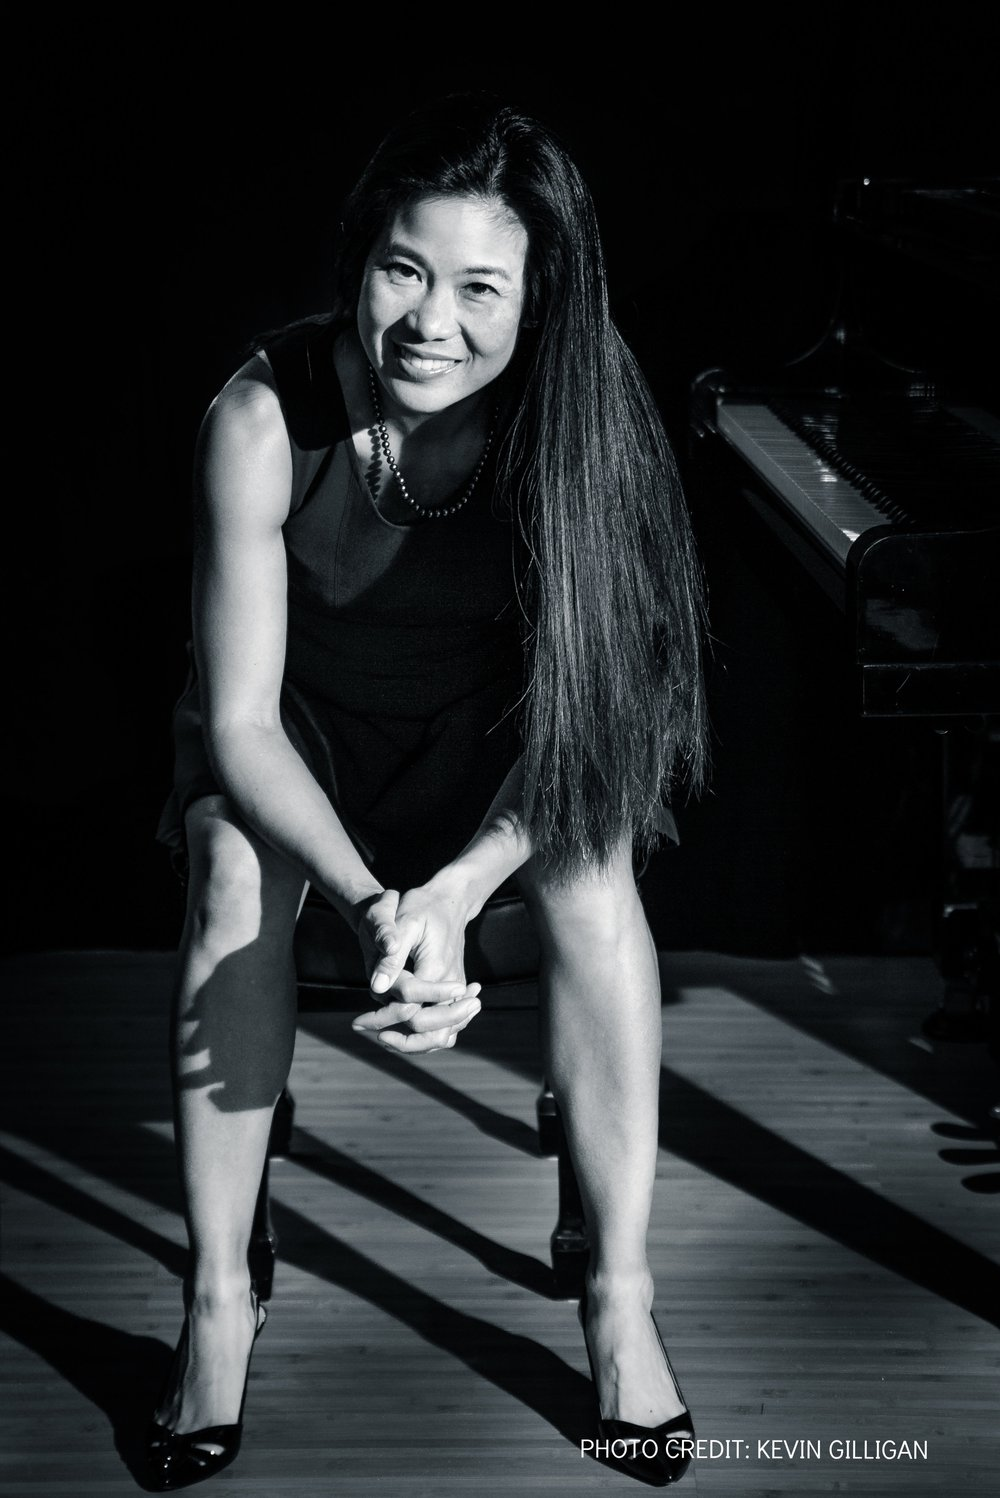 Noreen Wenjen, NCTM - Nationally Certified Teacher of MusicNoreen Wenjen received a BM from UC Santa Barbara in Piano Performance, an Artist Diploma from the American College of Musicians, and the 15-year MTNA National Teaching Certification in 2012. Noreen has received top prizes from international piano competitions and is listed in Who's Who Among American Women. Her teachers include Joanna Hodges, Nancy Rohr, Peter Yazbeck, Dr. Stewart Gordon, and Jim McCormick.Noreen is the President of the California Association of Professional Music Teachers (CAPMT). She also serves on the MTNA AMT Editorial Committee for their national magazine American Music Teacher. She served as the state Membership Secretary for CAPMT and as Piano Auditions/Ensemble Auditions Chair for CAPMT District 3 for almost 20 years. Noreen has been a member of MTAC since 1998 and served as 1st Vice President for the Long Beach Branch for ten years and Community Outreach Chair for the South Bay Branch for four years.Noreen's experience in marketing with Fortune 500 companies Nissin Foods and MacTemps (now Aquent) has helped her bring her business savvy to her piano studio and www.wenjenpiano.com website. She recently presented The Business-Minded Piano Teacher: Protection, Prevention, and Development Tips for Your Music Studio and presented Two-year Wait List: How to Build and Maintain a Recession-proof Music Studio at the 2015 MTNA Conference in Las Vegas. She will present three music technology sessions at the 2016 MTAC Convention in Los Angeles (see below).She is privileged to-have taught extraordinary students who are blind, deaf, gifted, gifted Profoundly, dyslexic, and-have ADHD. Her students-have received awards in piano competitions and she serves as an adjudicator the MTAC, SYMF, and SCJBF, among other events.She maintains piano studios and Seal Beach in Torrance, CA and enjoys playing tennis, cooking, and surfing with her family.PHOTO CREDIT: KEVIN GILLIGAN